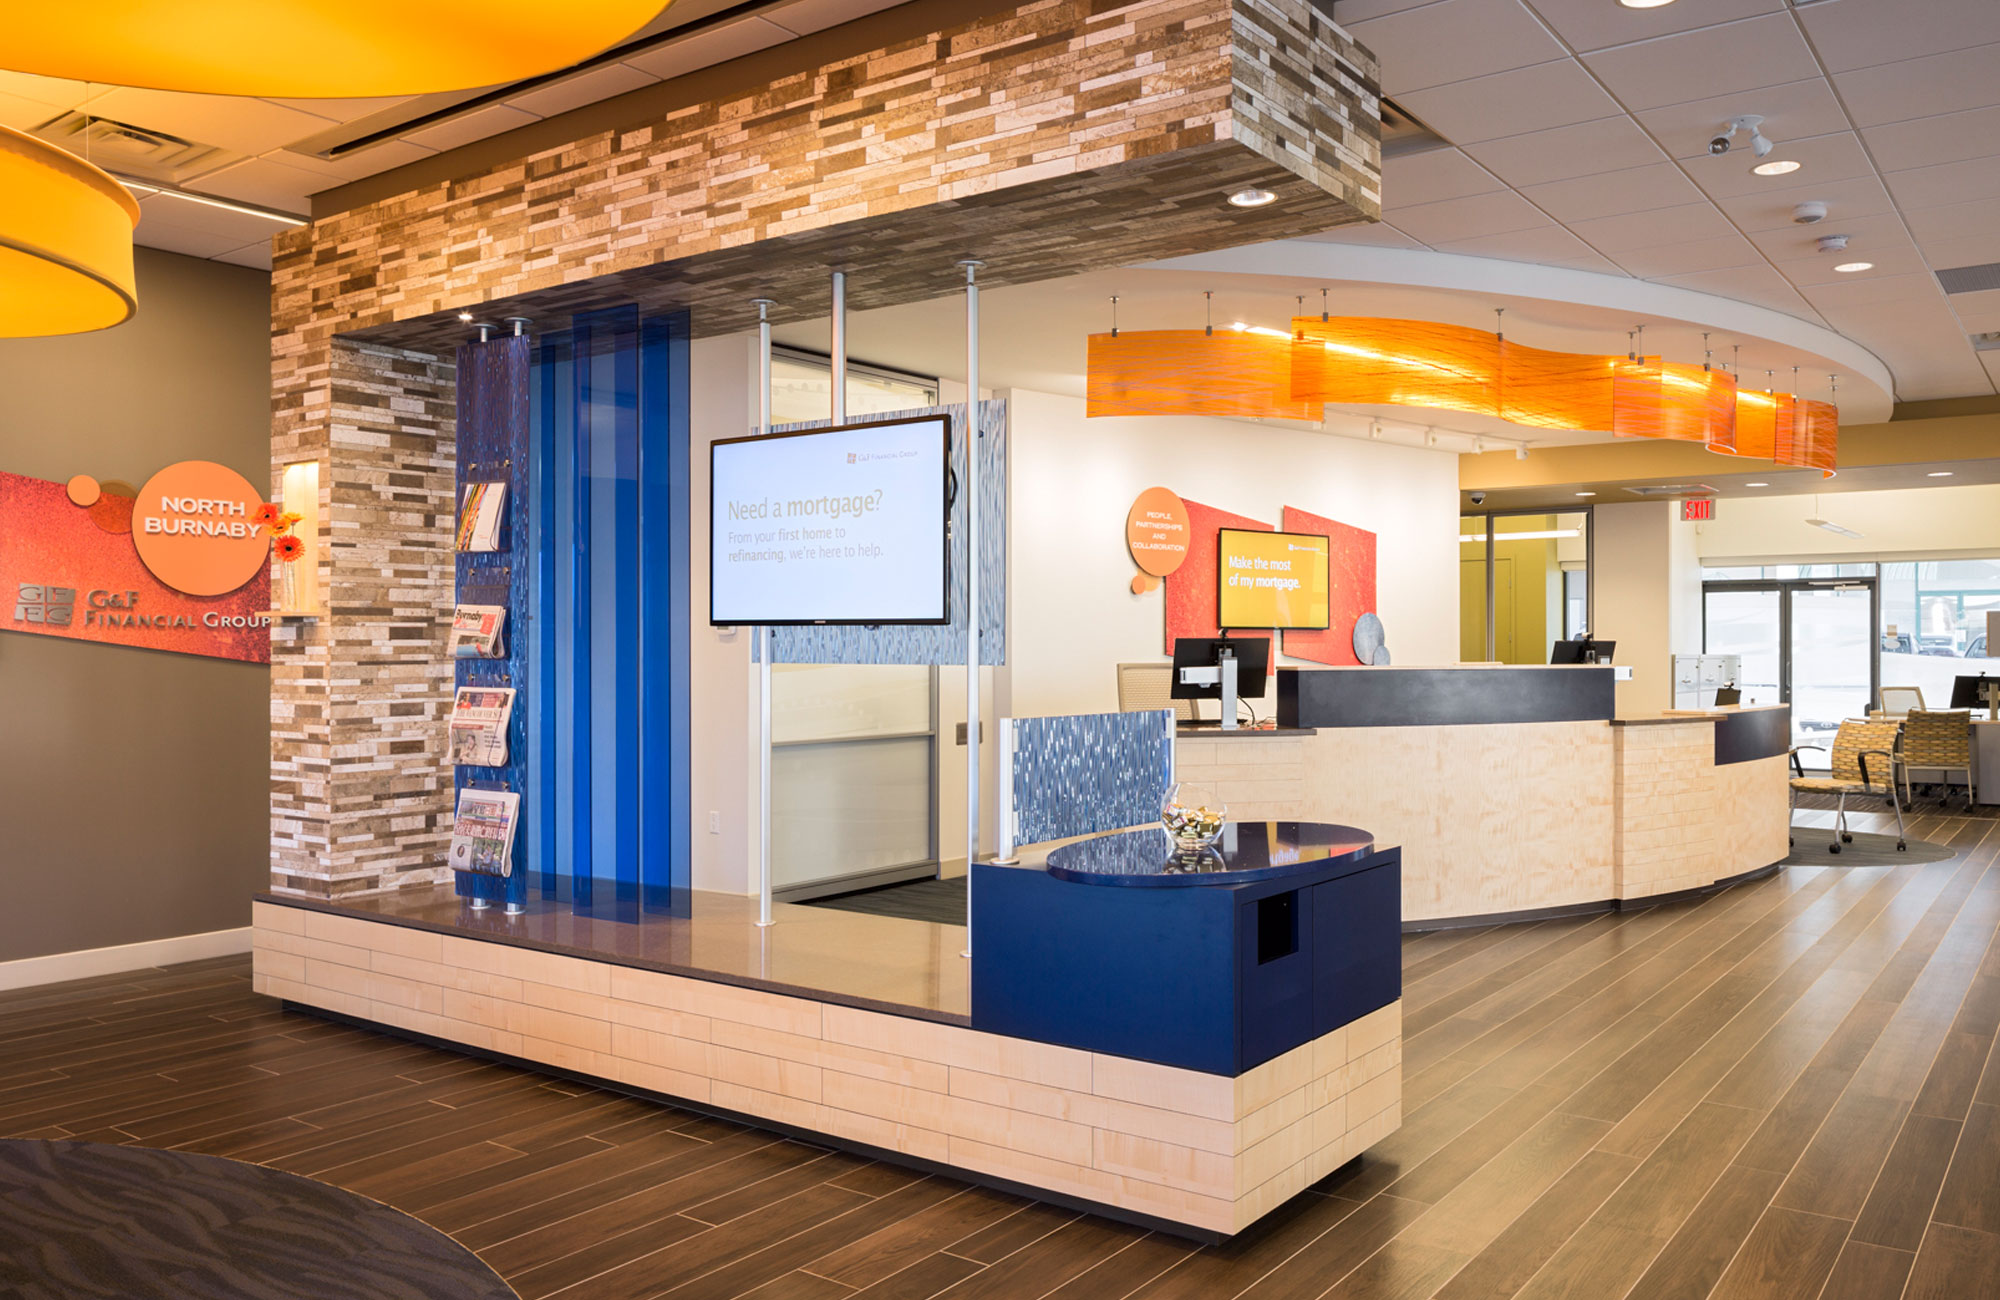 Fusion Projects Design Build G&F Financial Group